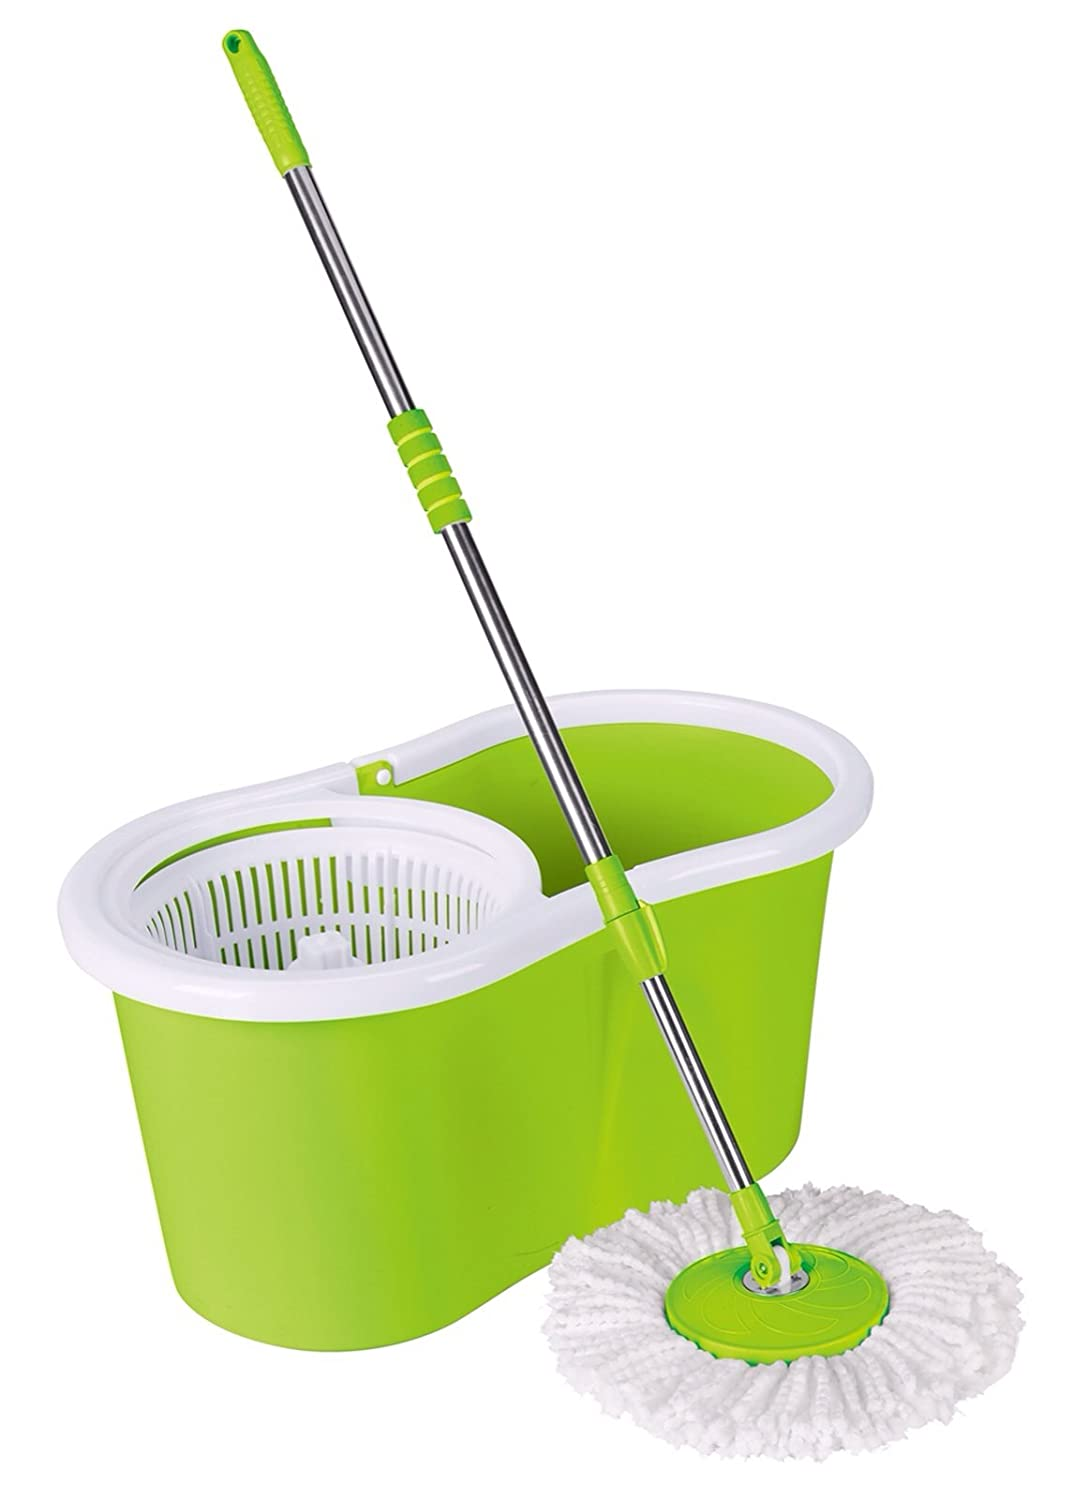 Gebi Super Spin Mop with 1 Extra Refill Free (Multicolour): Amazon ...